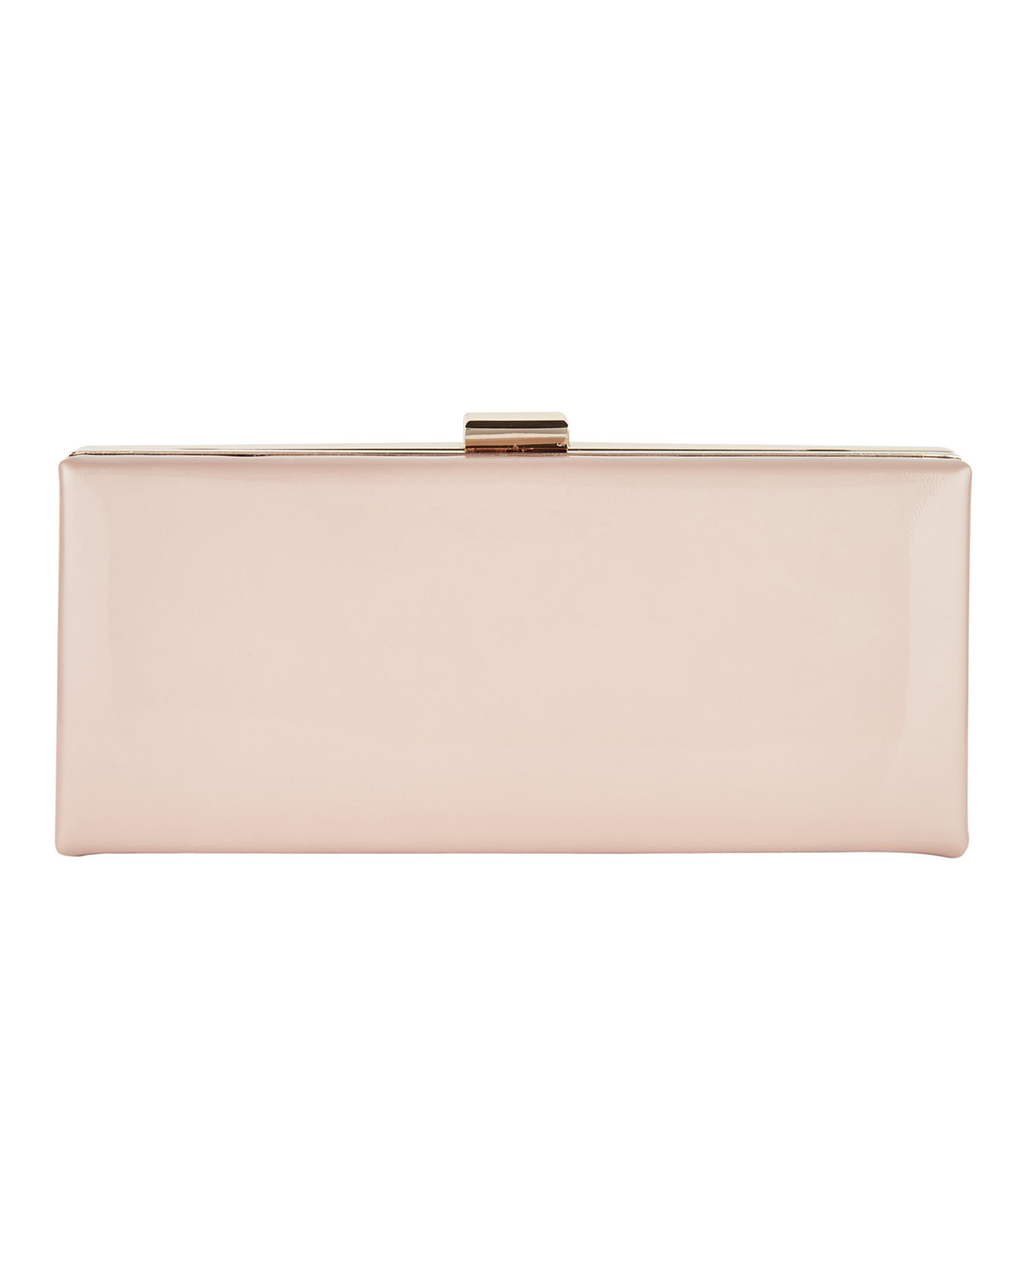 Amara Leather Clutch - predominant colour: blush; occasions: evening, occasion; type of pattern: standard; style: clutch; length: hand carry; size: small; material: leather; pattern: plain; finish: plain; season: s/s 2016; wardrobe: event